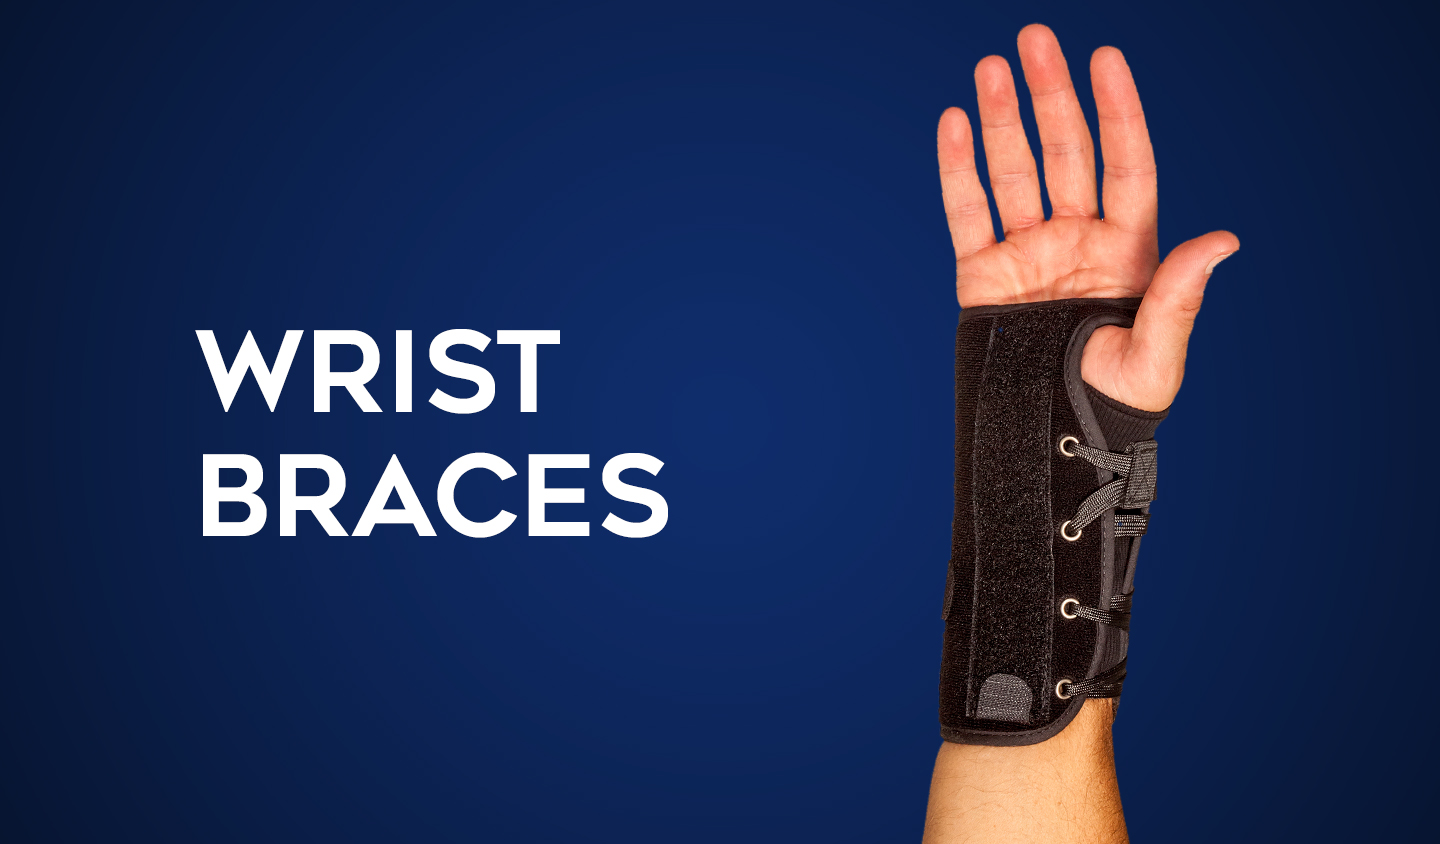 Wrist Braces medical product